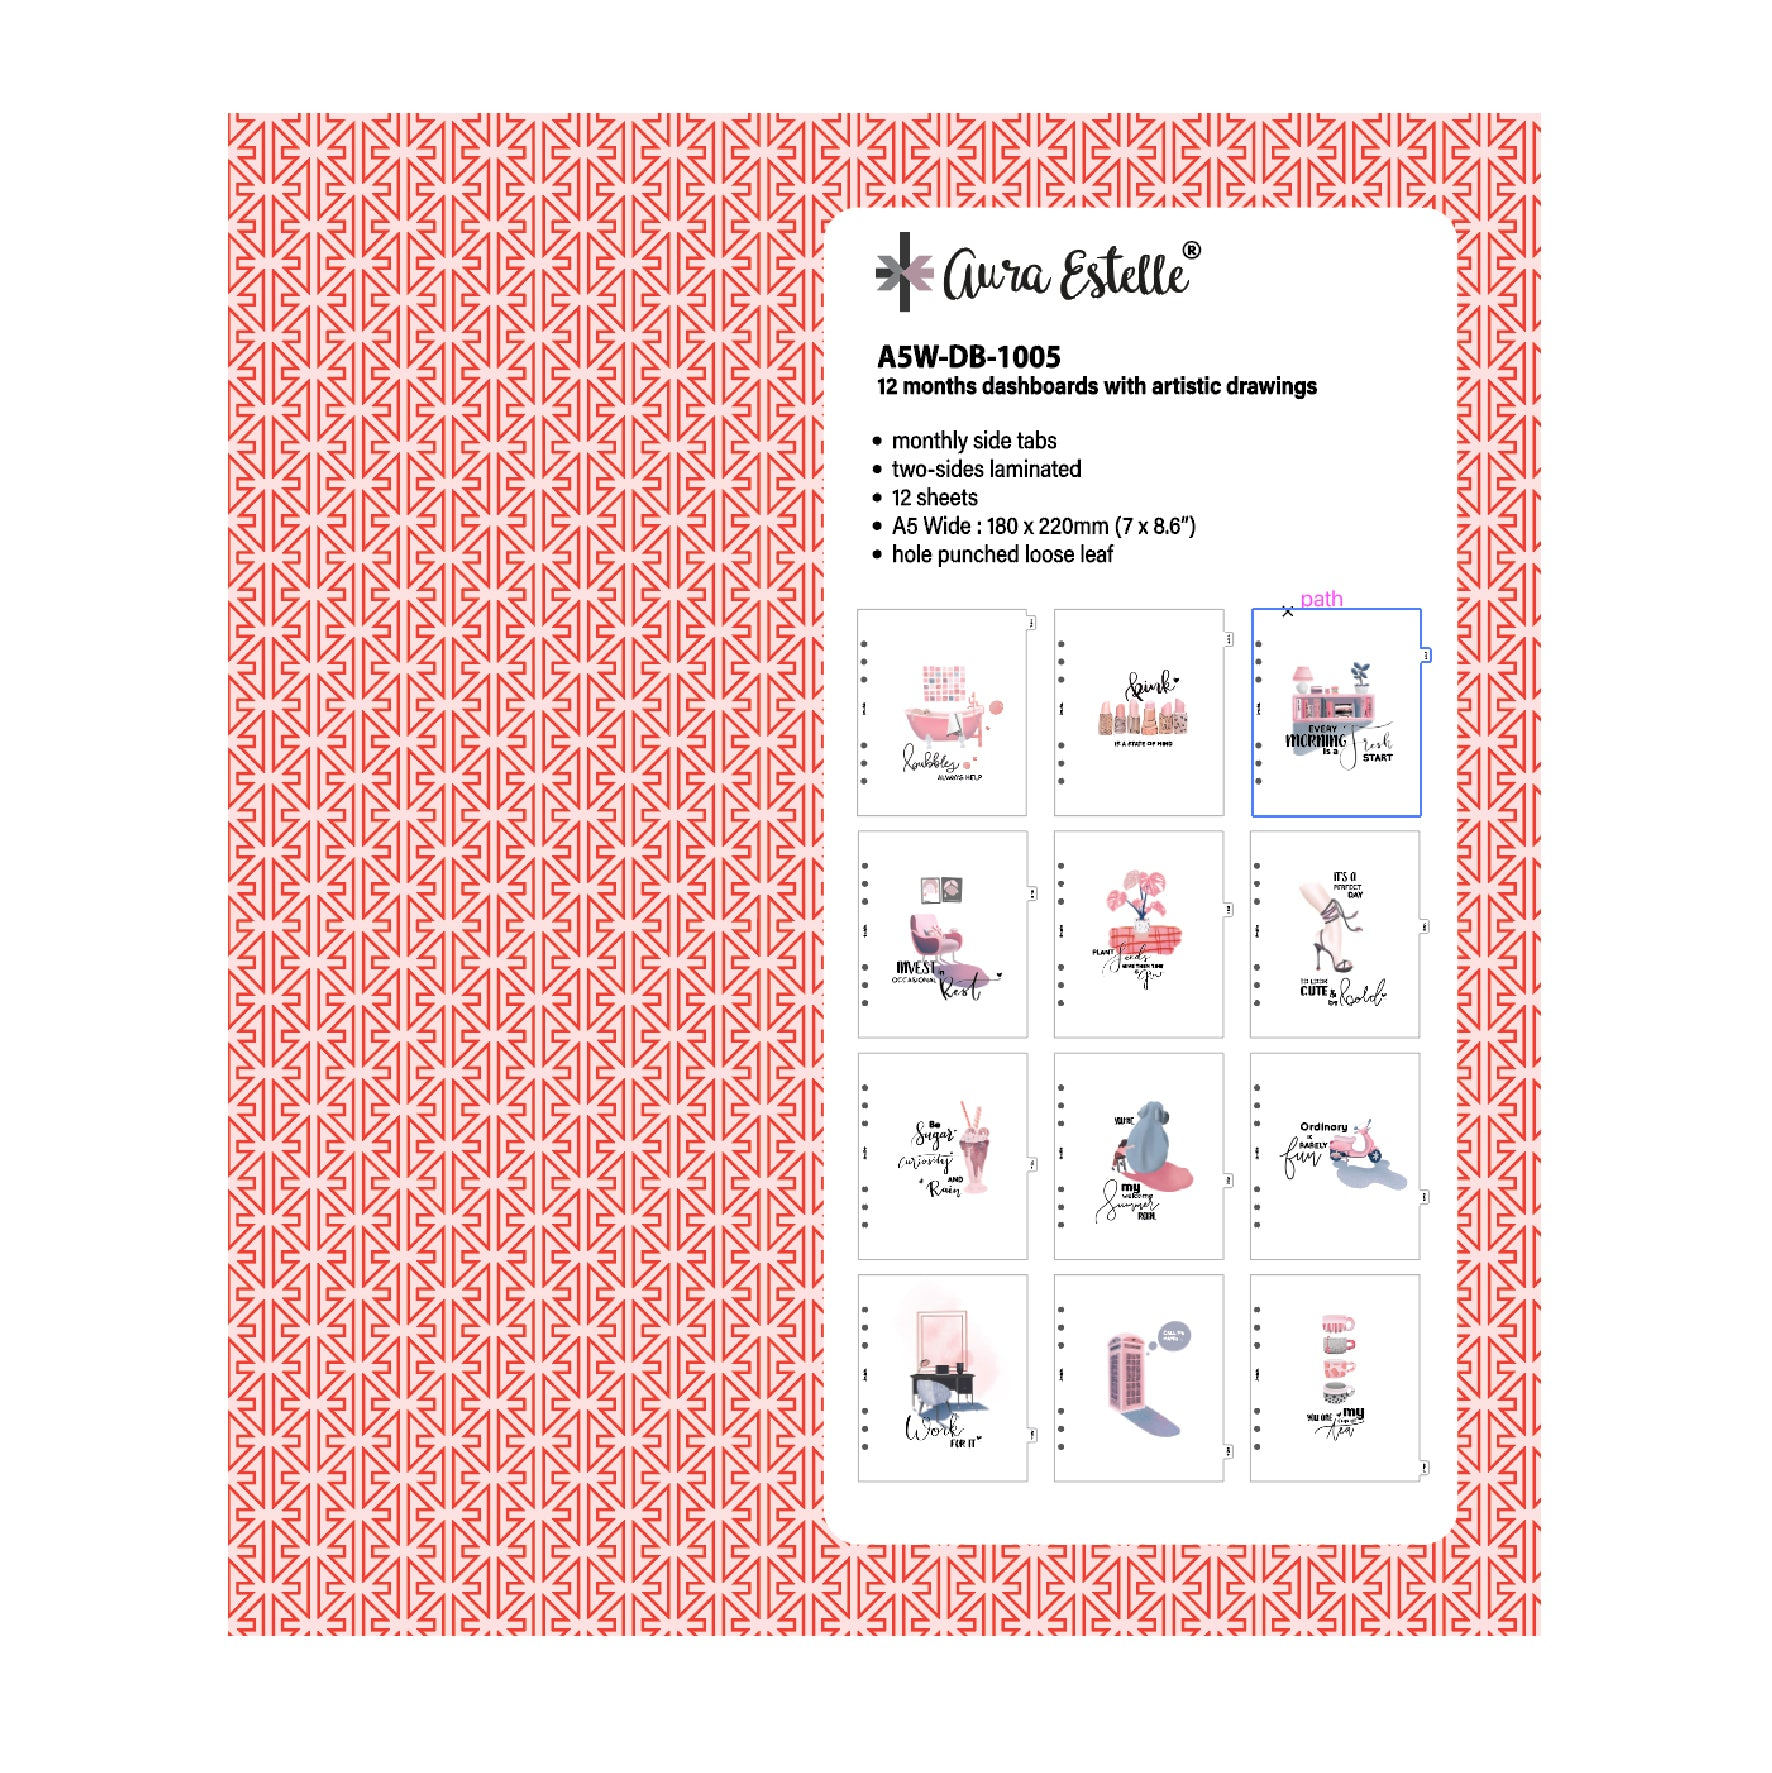 12 MONTHS DASHBOARDS WITH ARTISTIC DRAWINGS A5W 1005